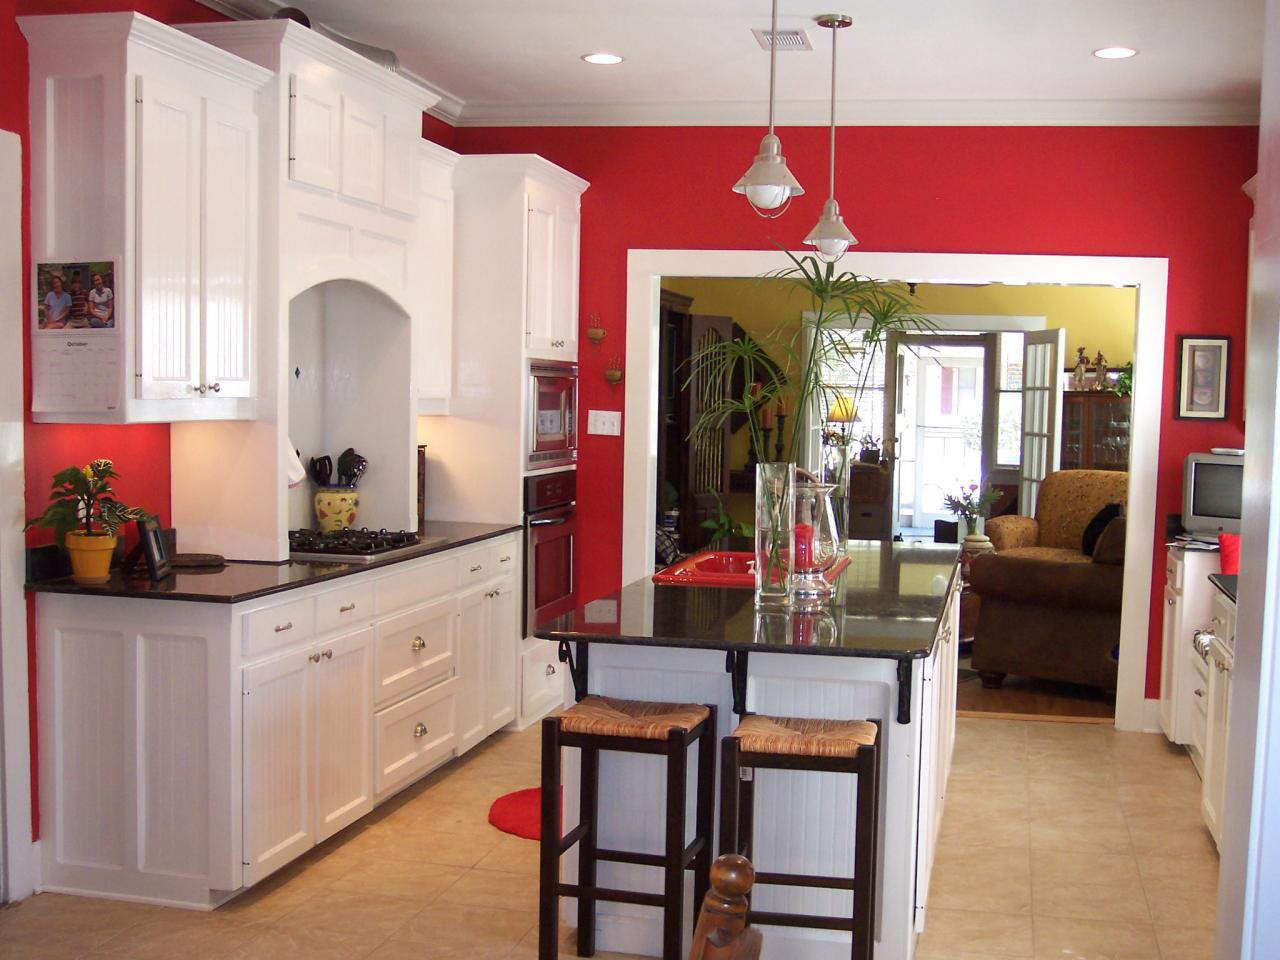 Best ideas about Kitchen Paint Color Ideas . Save or Pin 20 Best Paint Colors for Kitchens 2018 Interior Now.